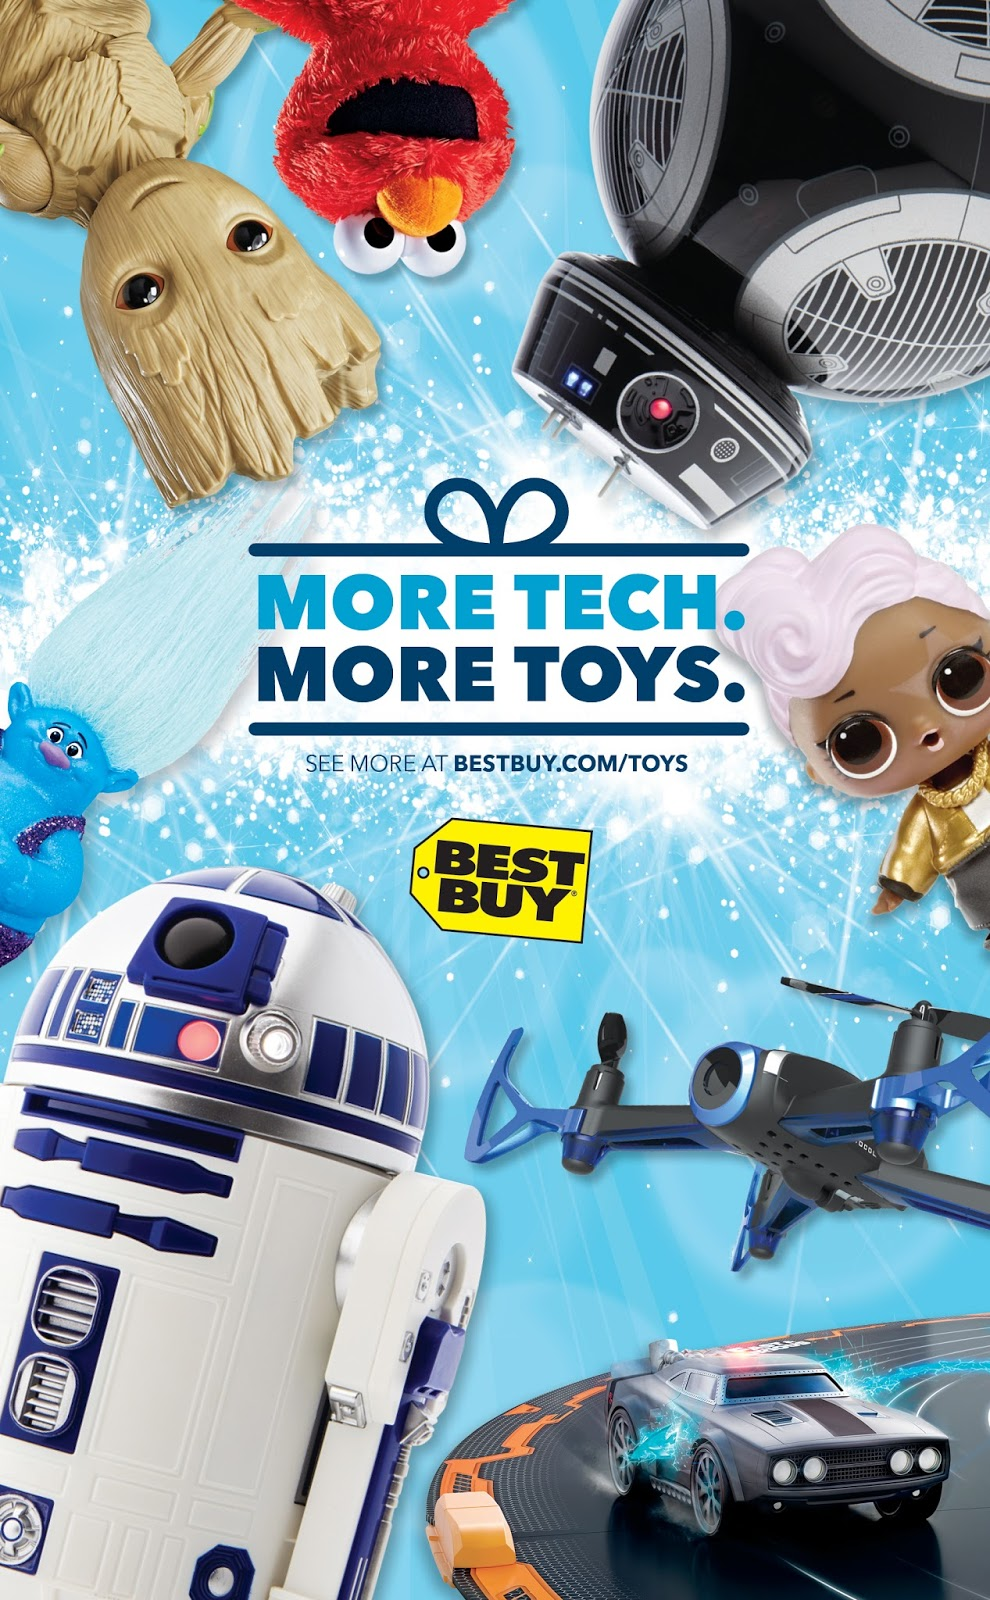 Best Educational Toys For Tech : The best tech toys you have to take a peek views